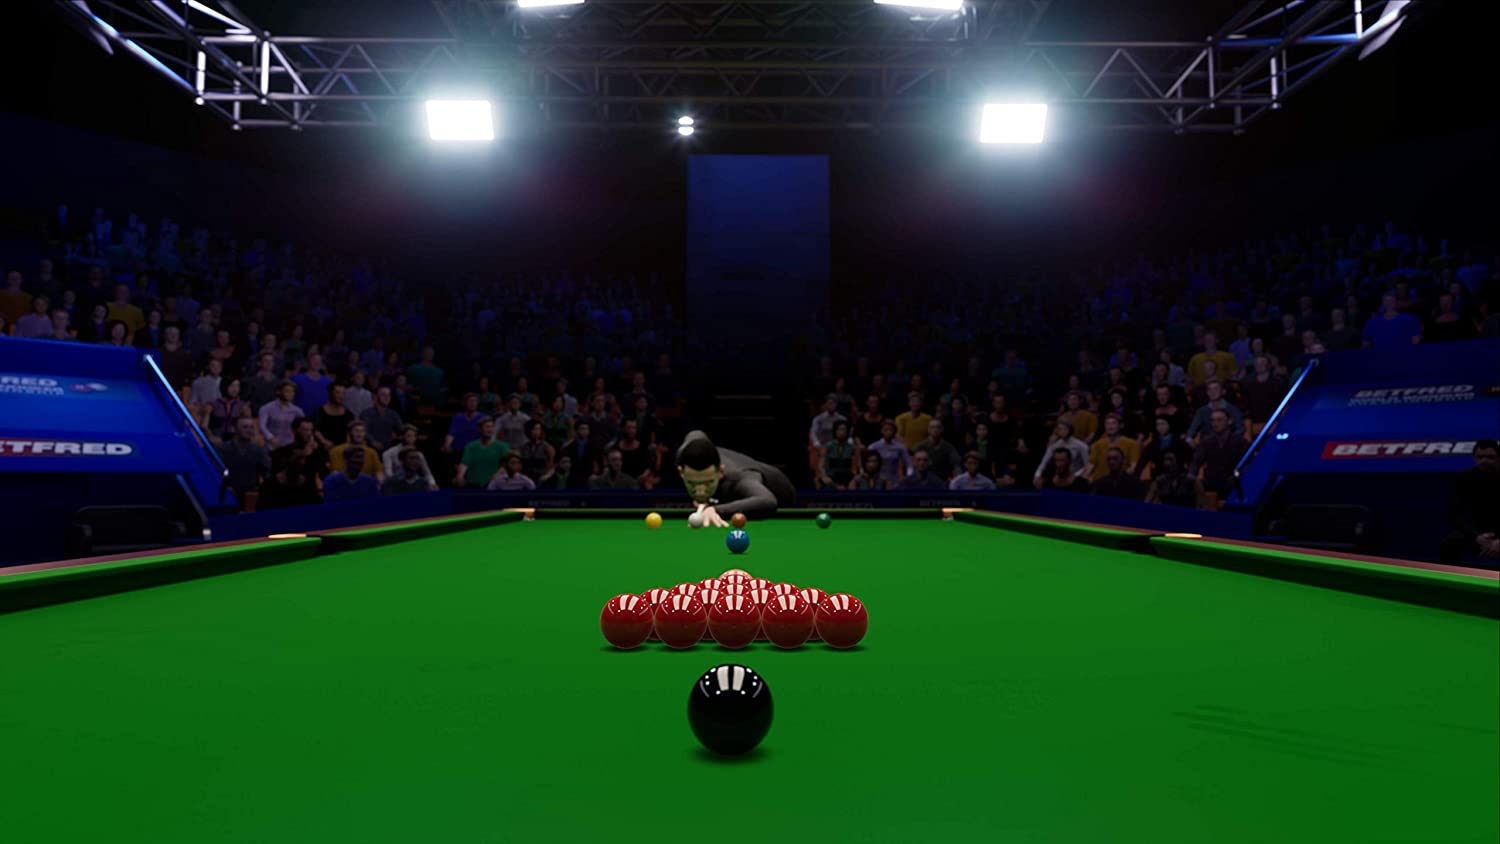 Snooker 19 - The Official Video Game - PlayStation 4 - PlayStation ...